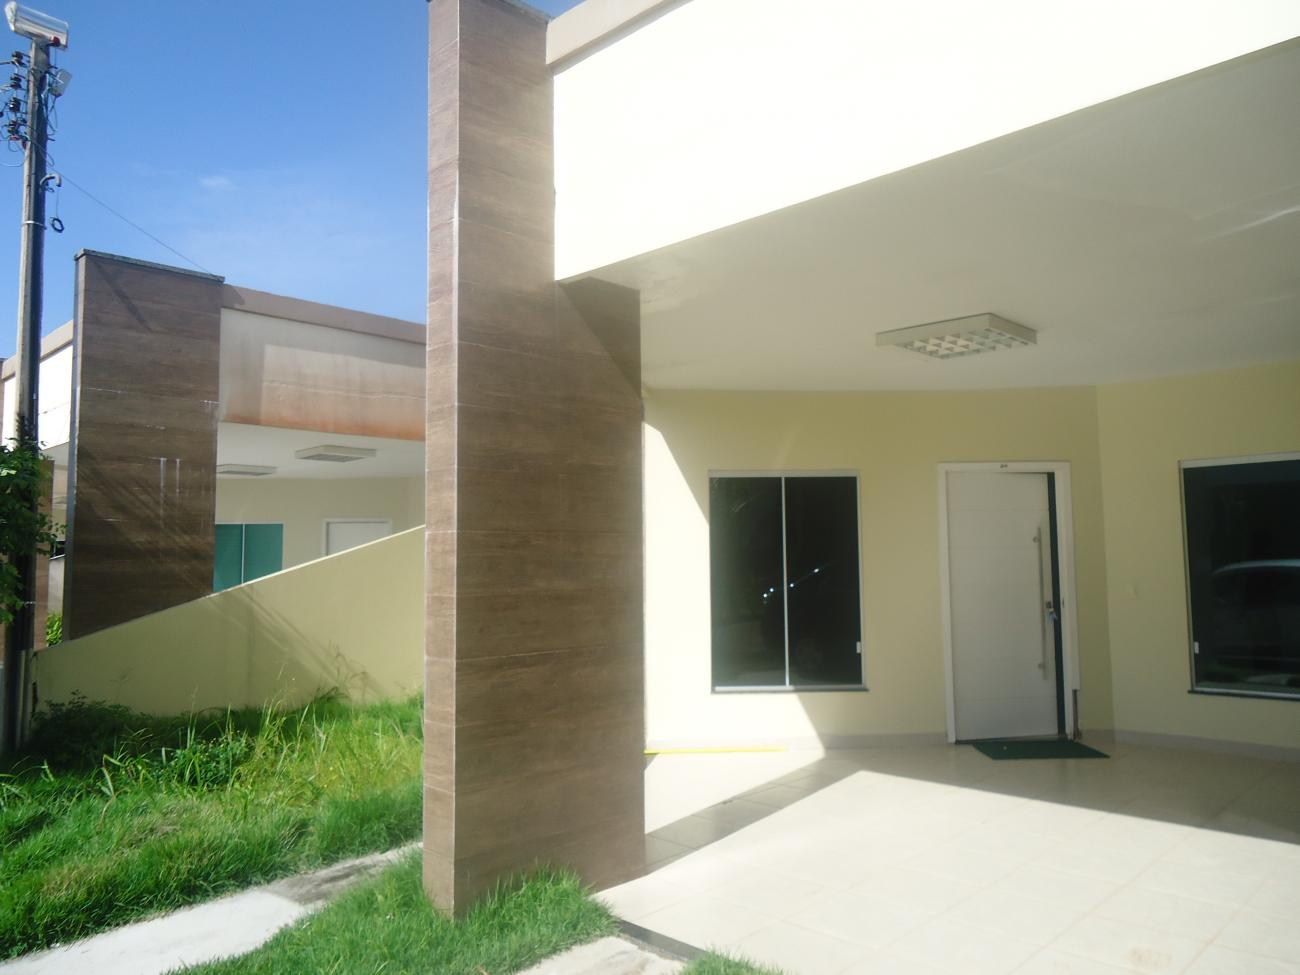 casa, cabralzinho, macap& 225 ap, local do imovel classificados